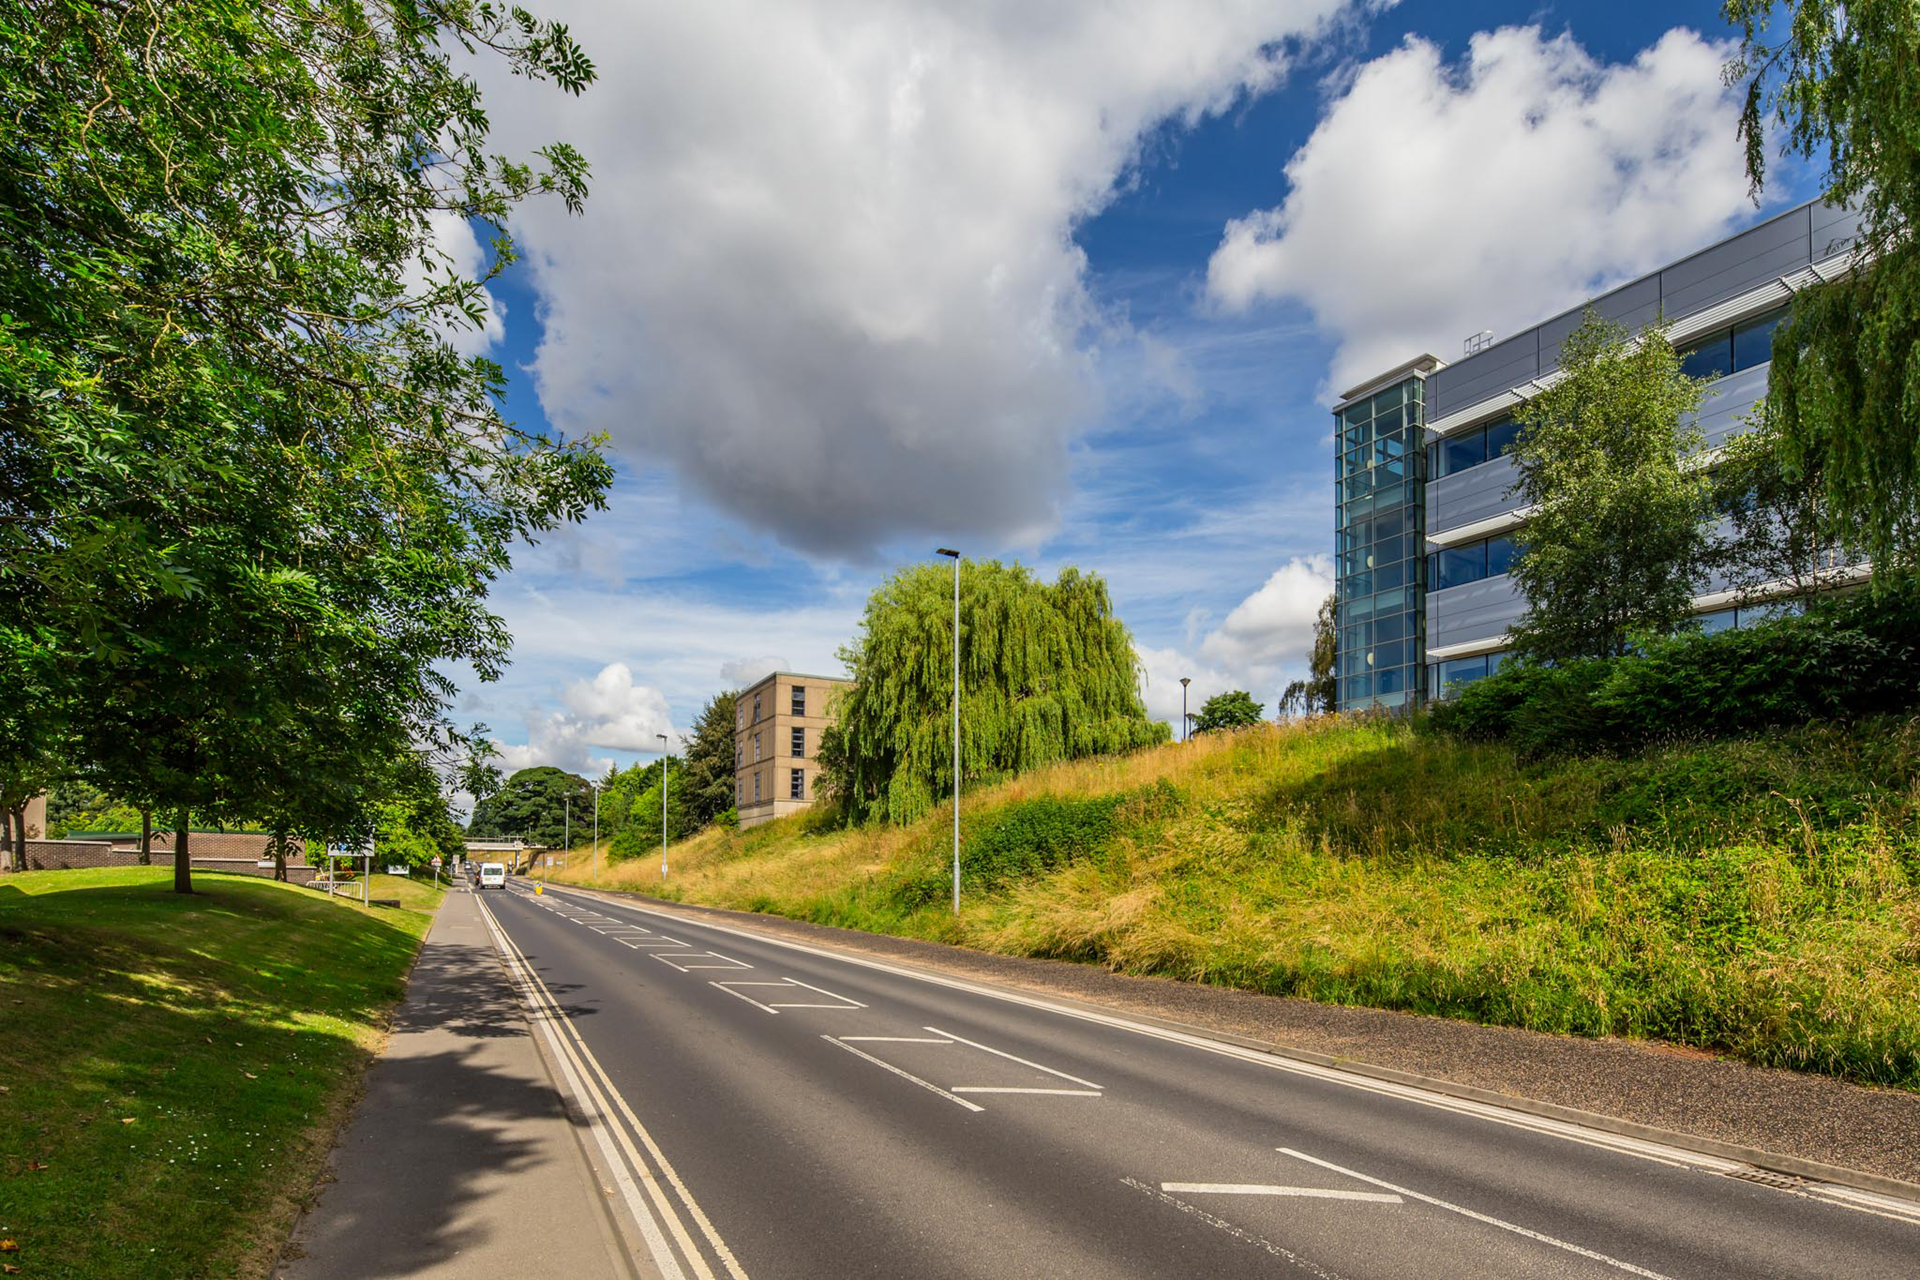 University Road and Alcuin College